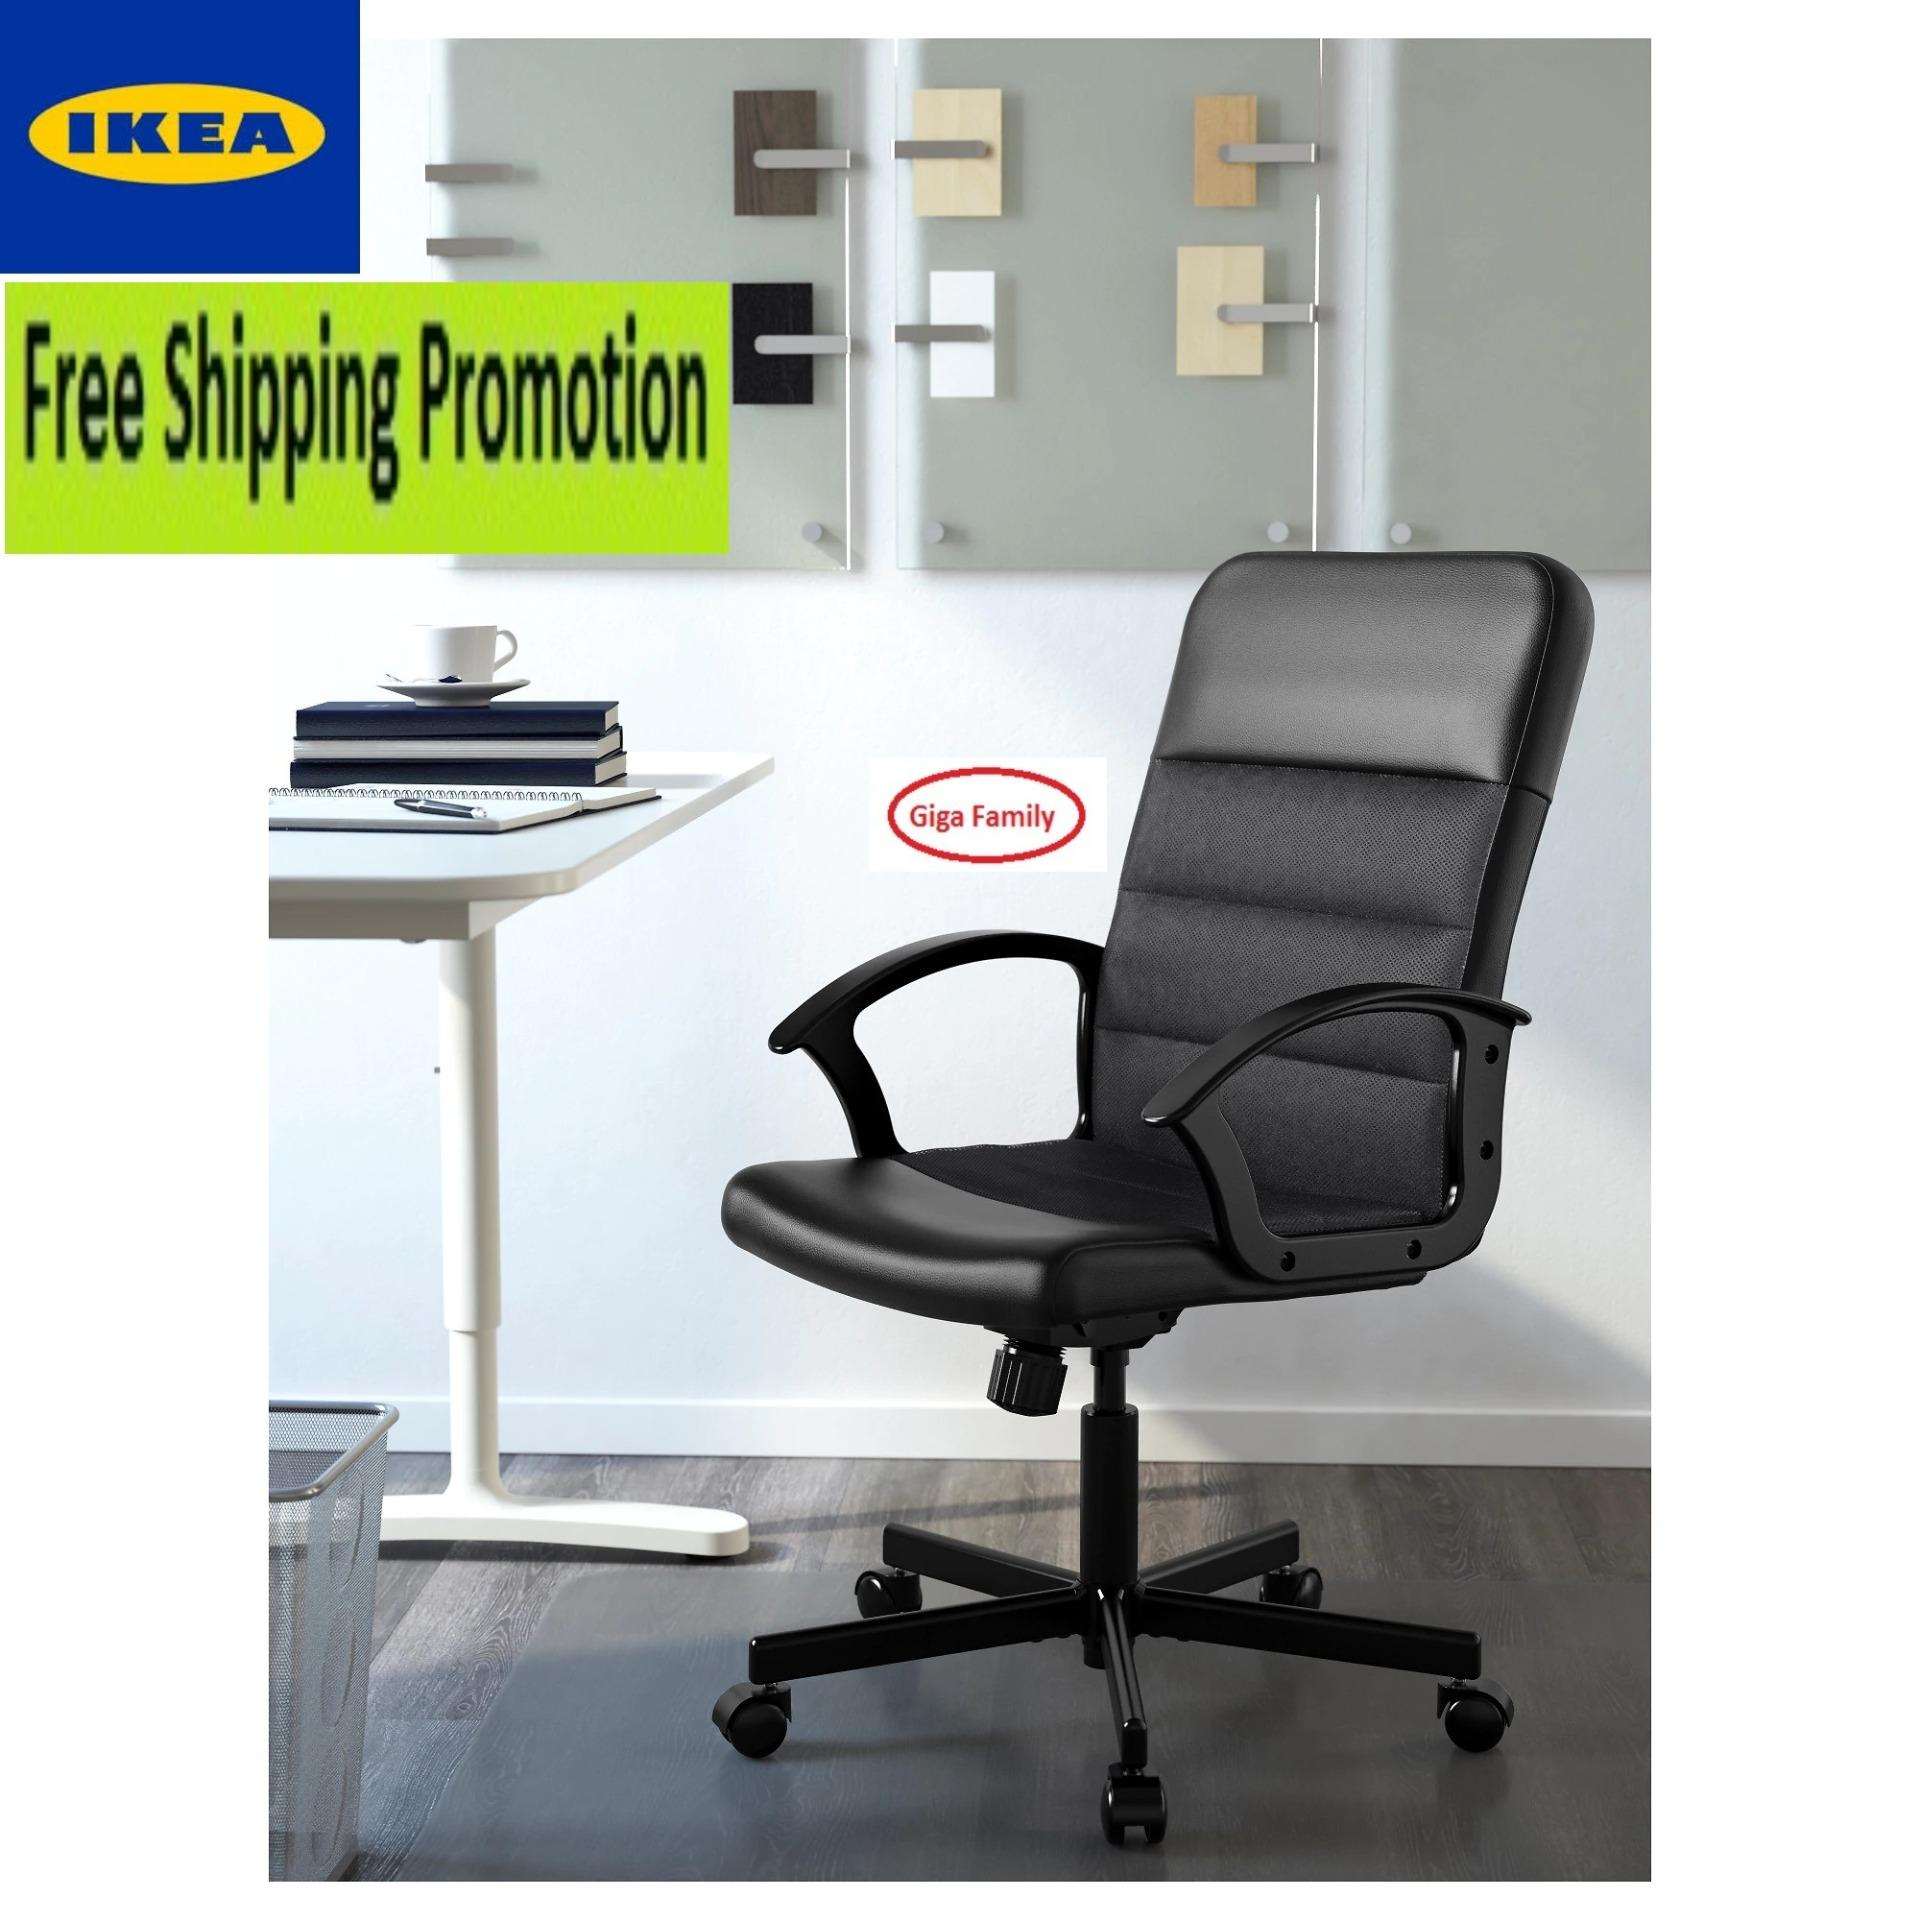 Home Home Office Chairs – Buy Home Home Office Chairs At Best Price With Regard To Chill Swivel Chairs With Metal Base (Photo 19 of 20)